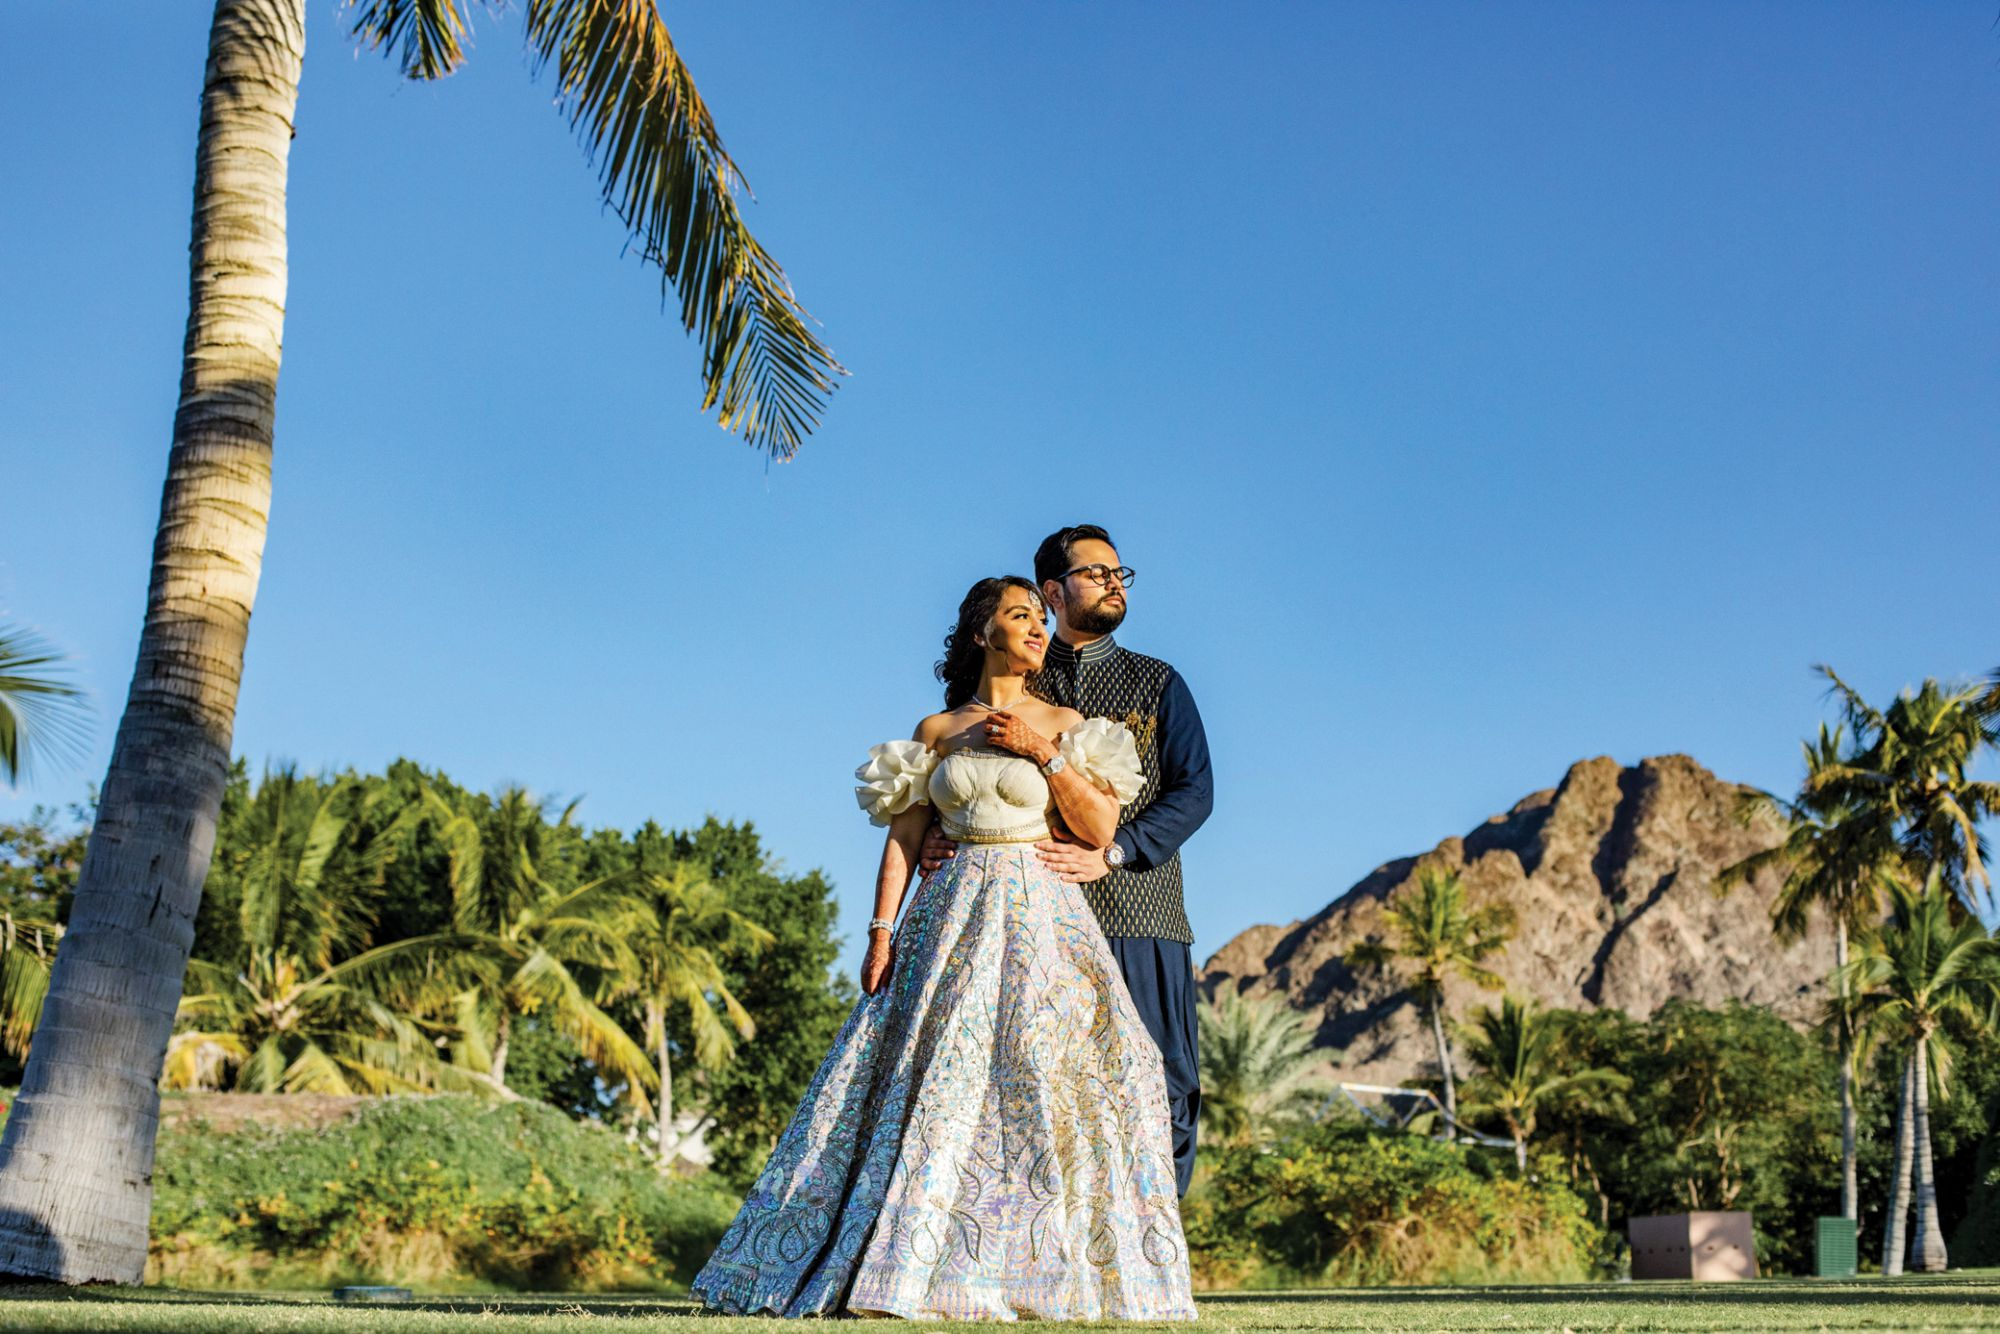 Take A Look At Roma Hemlani & Jaskaran Singh's Spectacular Destination Wedding In Oman